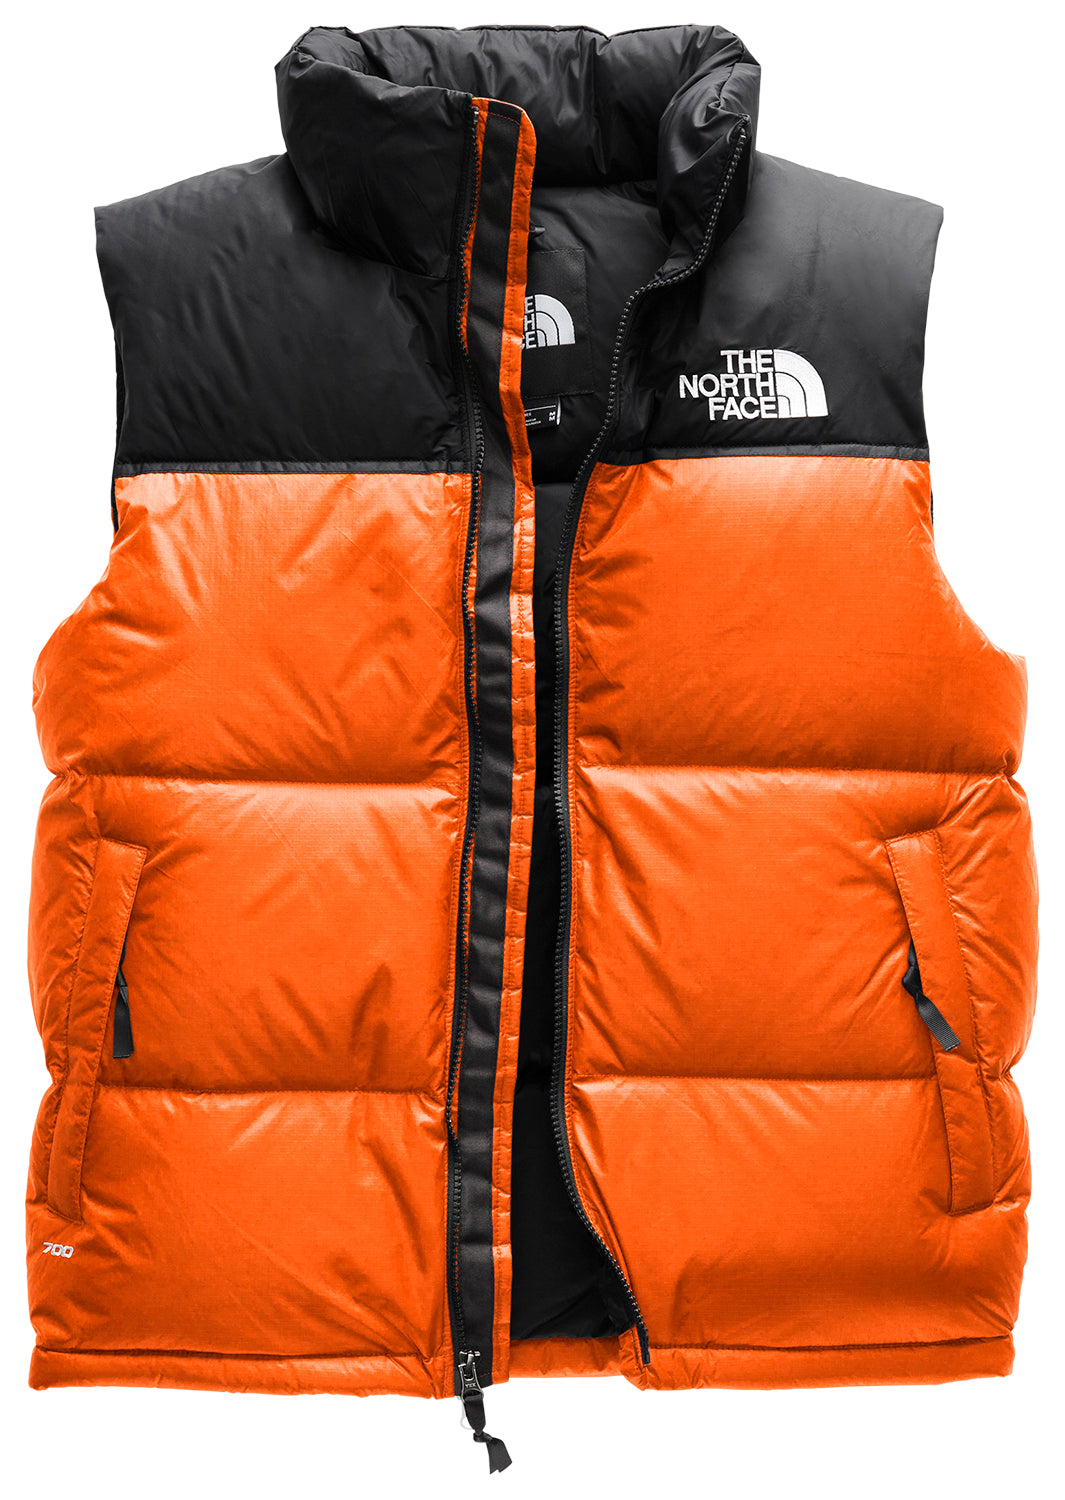 The North Face 1996 Retro Nuptse Vest - Men s - Gear Coop 5522cbcac